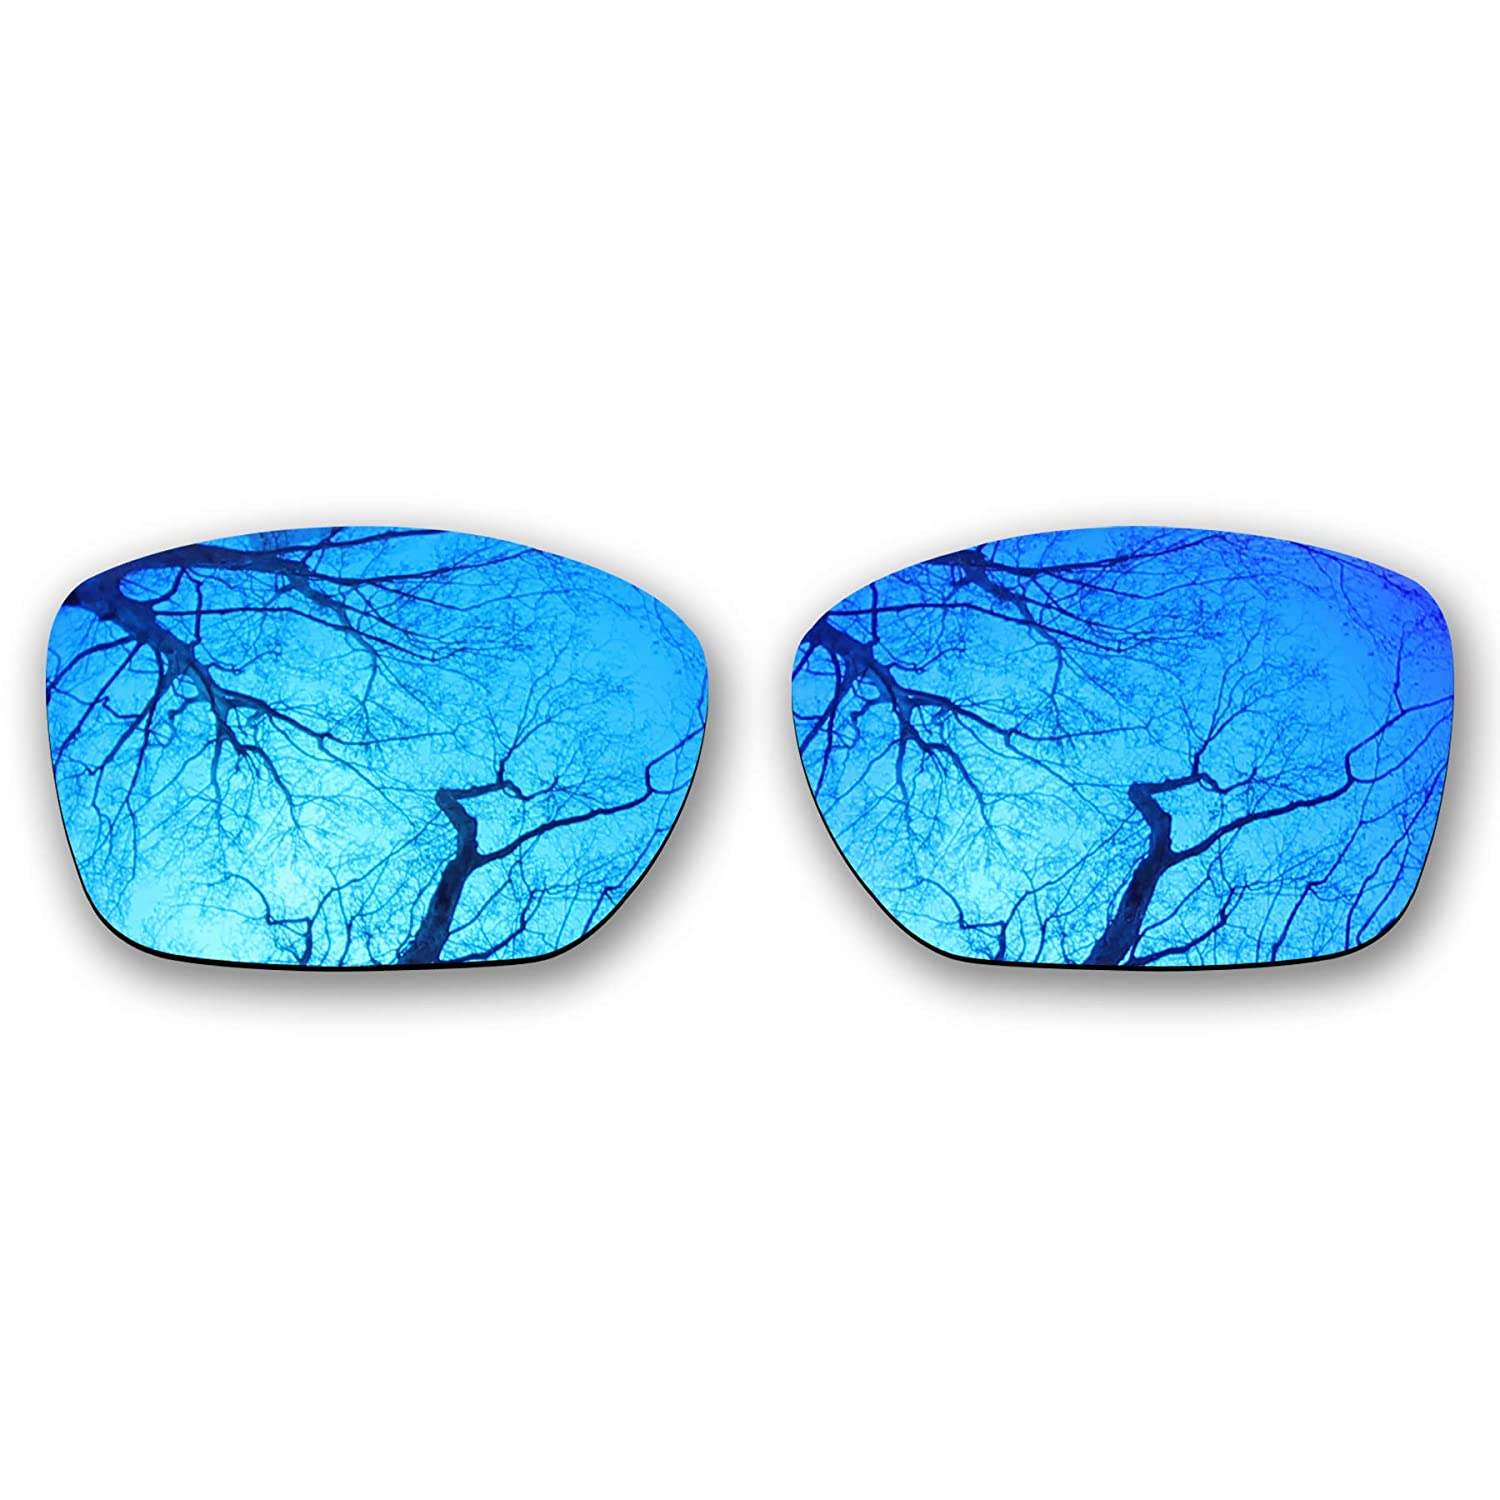 4083af69b5 Amazon.com  ToughAsNails Polarized Lens Replacement for Oakley TwoFace XL  OO9350 Sunglass - Violet Blue  Clothing